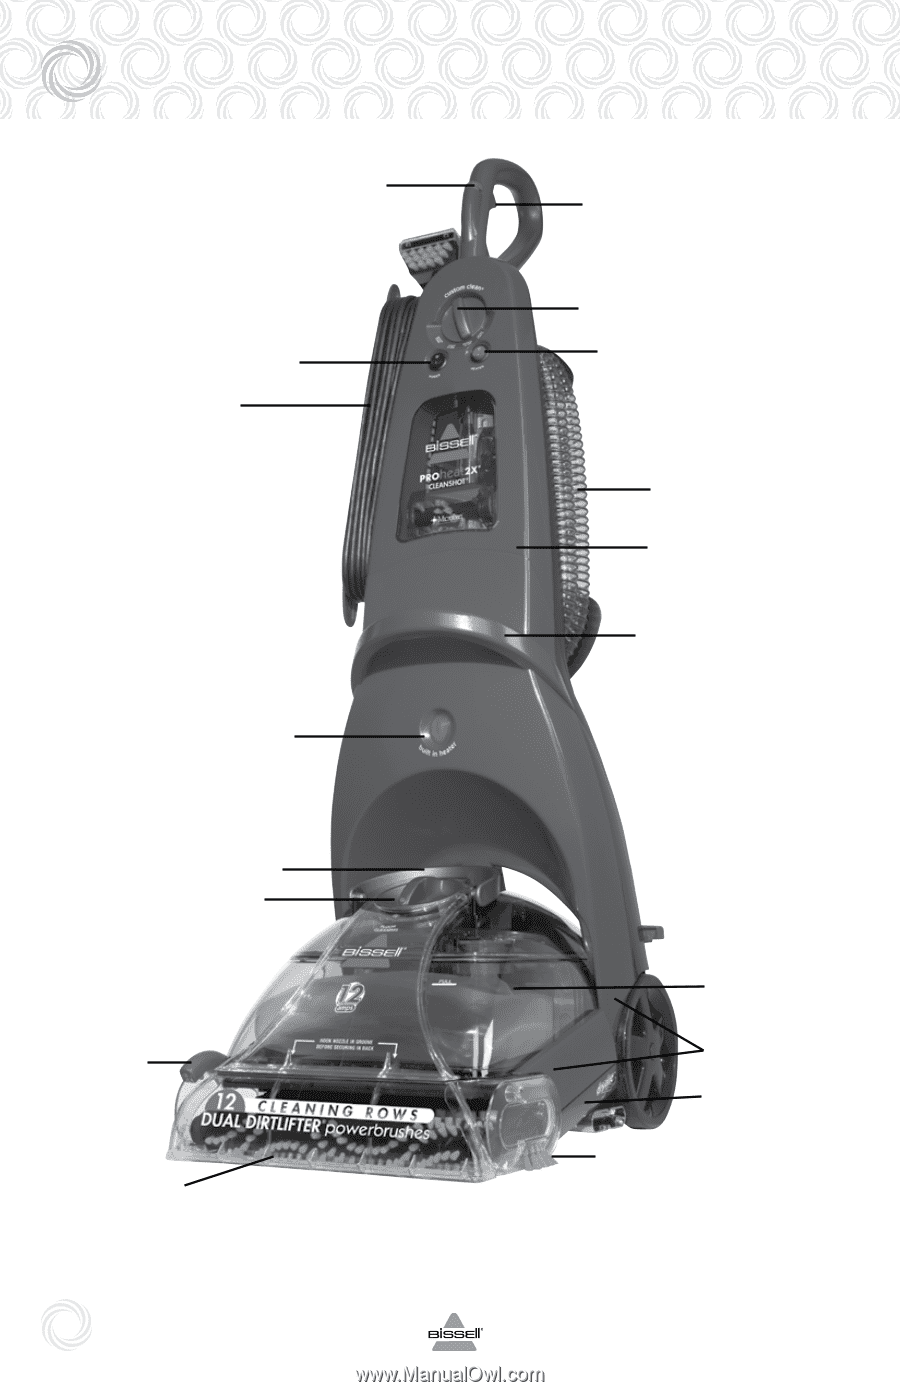 Bissell Proheat 2x Cleanshot Upright Deep Cleaner 9500 Manual Parts Diagram 1698 Powersteamer B I S E L C O M Schematic